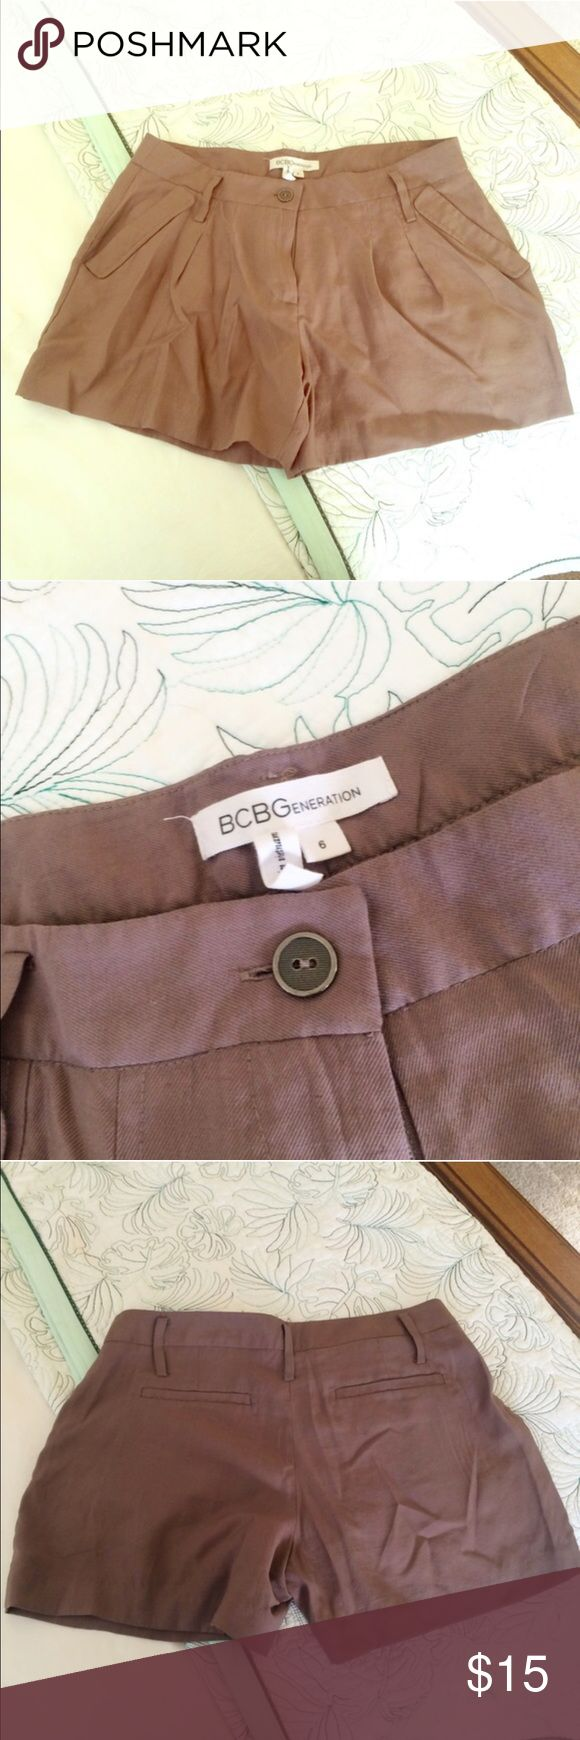 BCBGeneration Shorts Tailored BCBGeneration taupe colored shorts with front and back pockets. Run a bit on the smaller side for a 6. Excellent condition, no stains! (53% viscose, 31% lyocell, 16% nylon) BCBGeneration Shorts